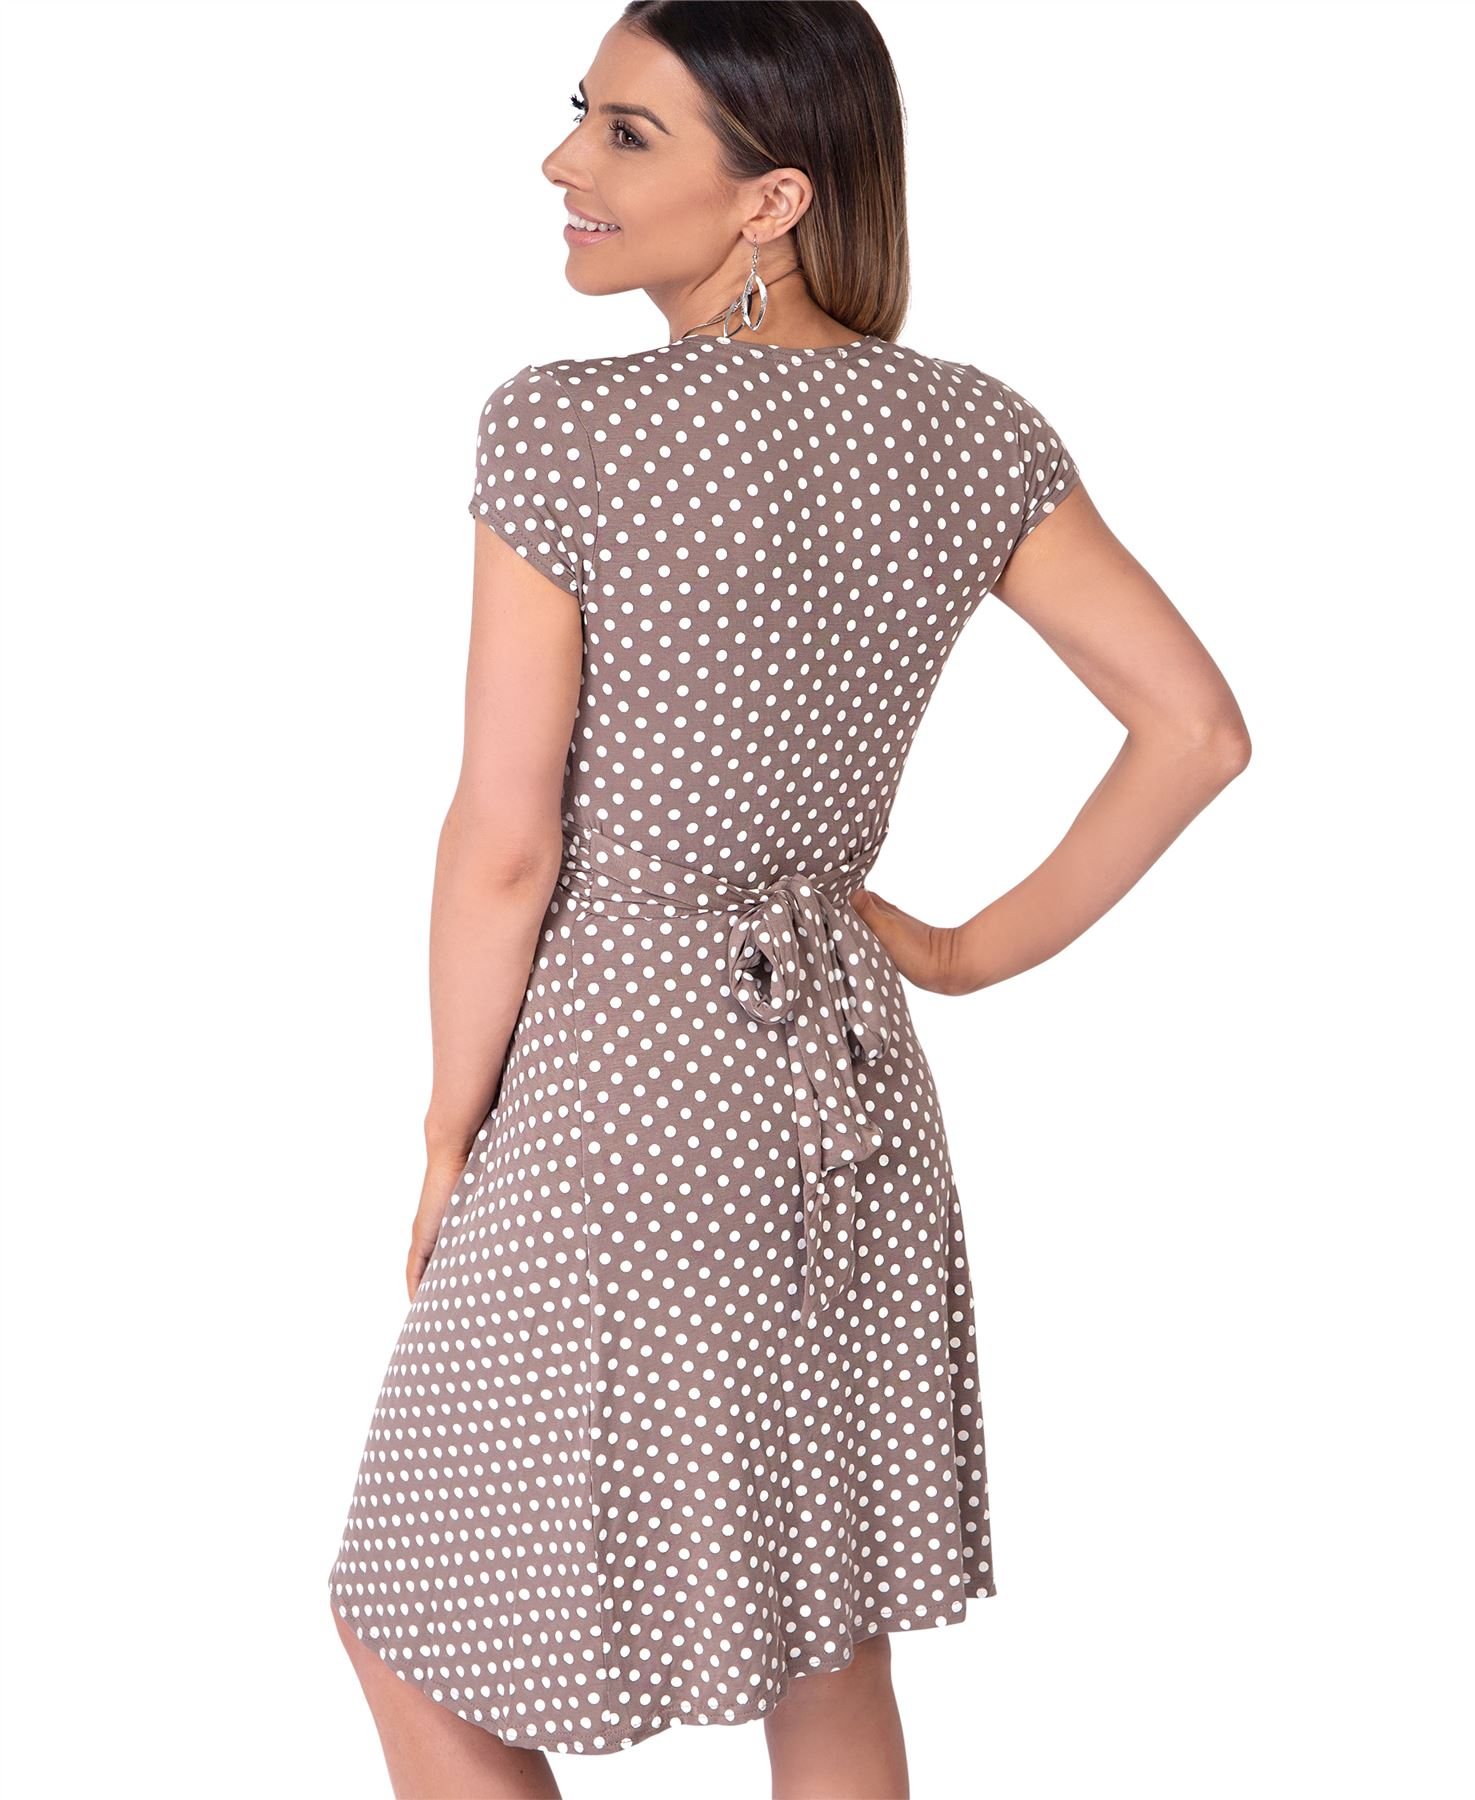 Womens-Polka-Dot-Retro-Dress-Pleated-Skirt-Wrap-Mini-V-Neck-Top-Swing-Party thumbnail 19